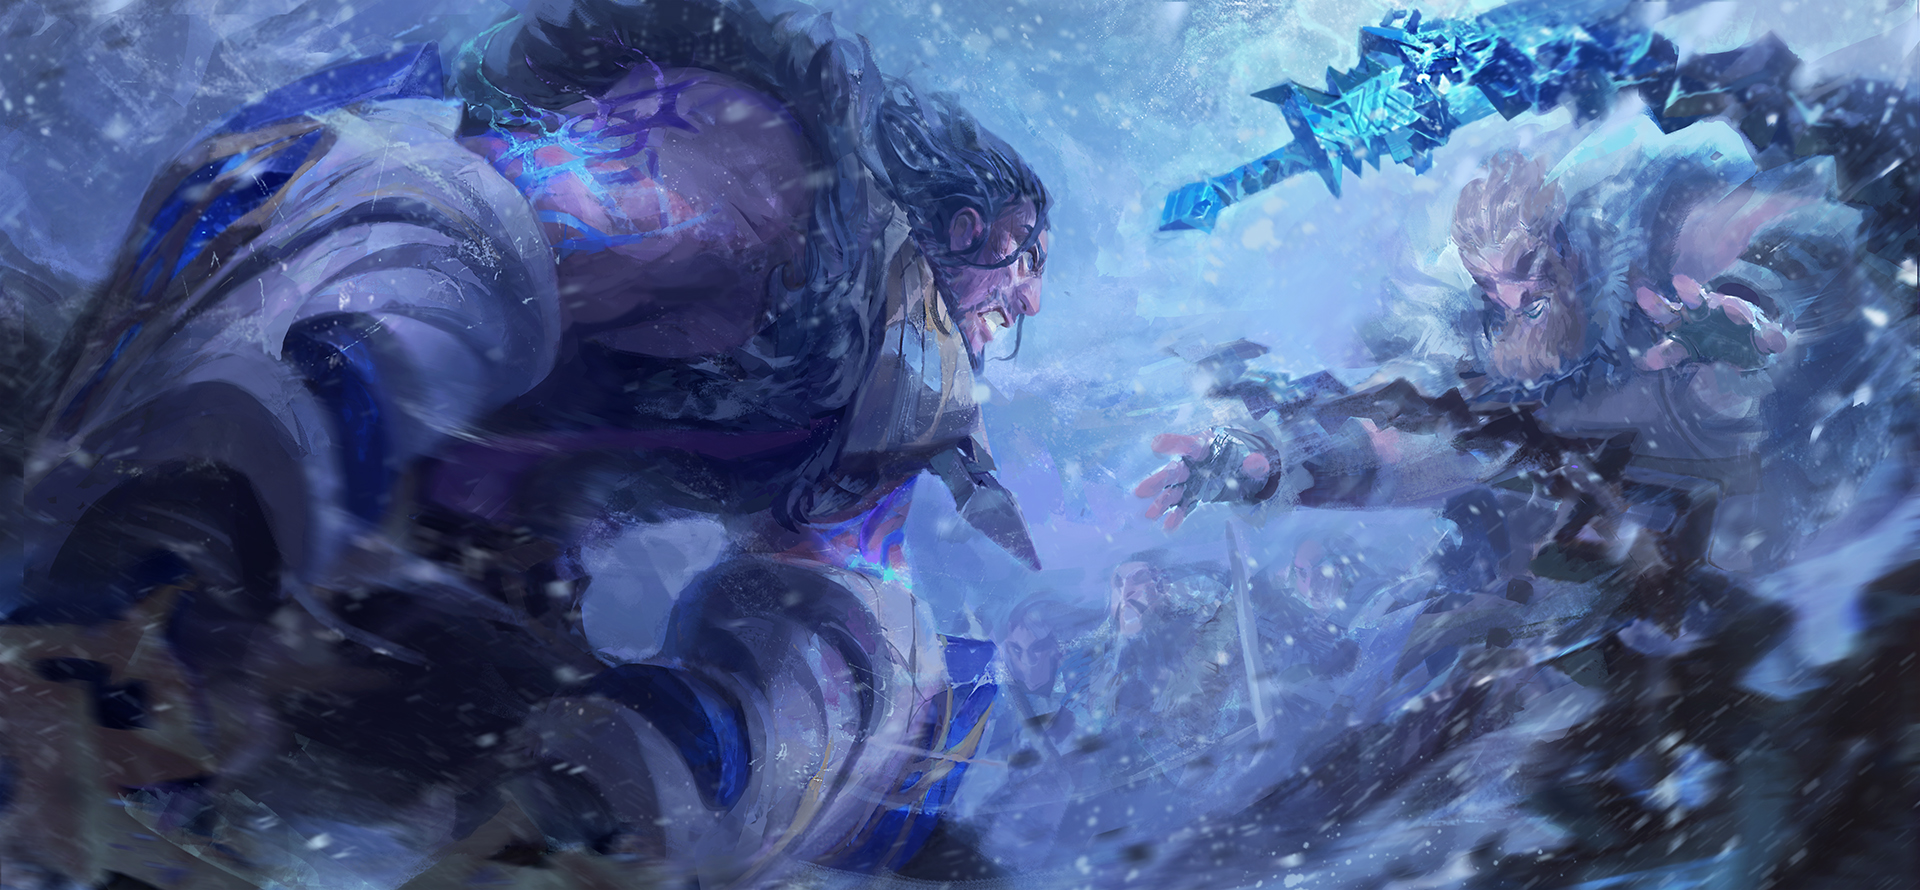 Riot drops Sylas in the Freljord and Karma into a past life in new lore dump